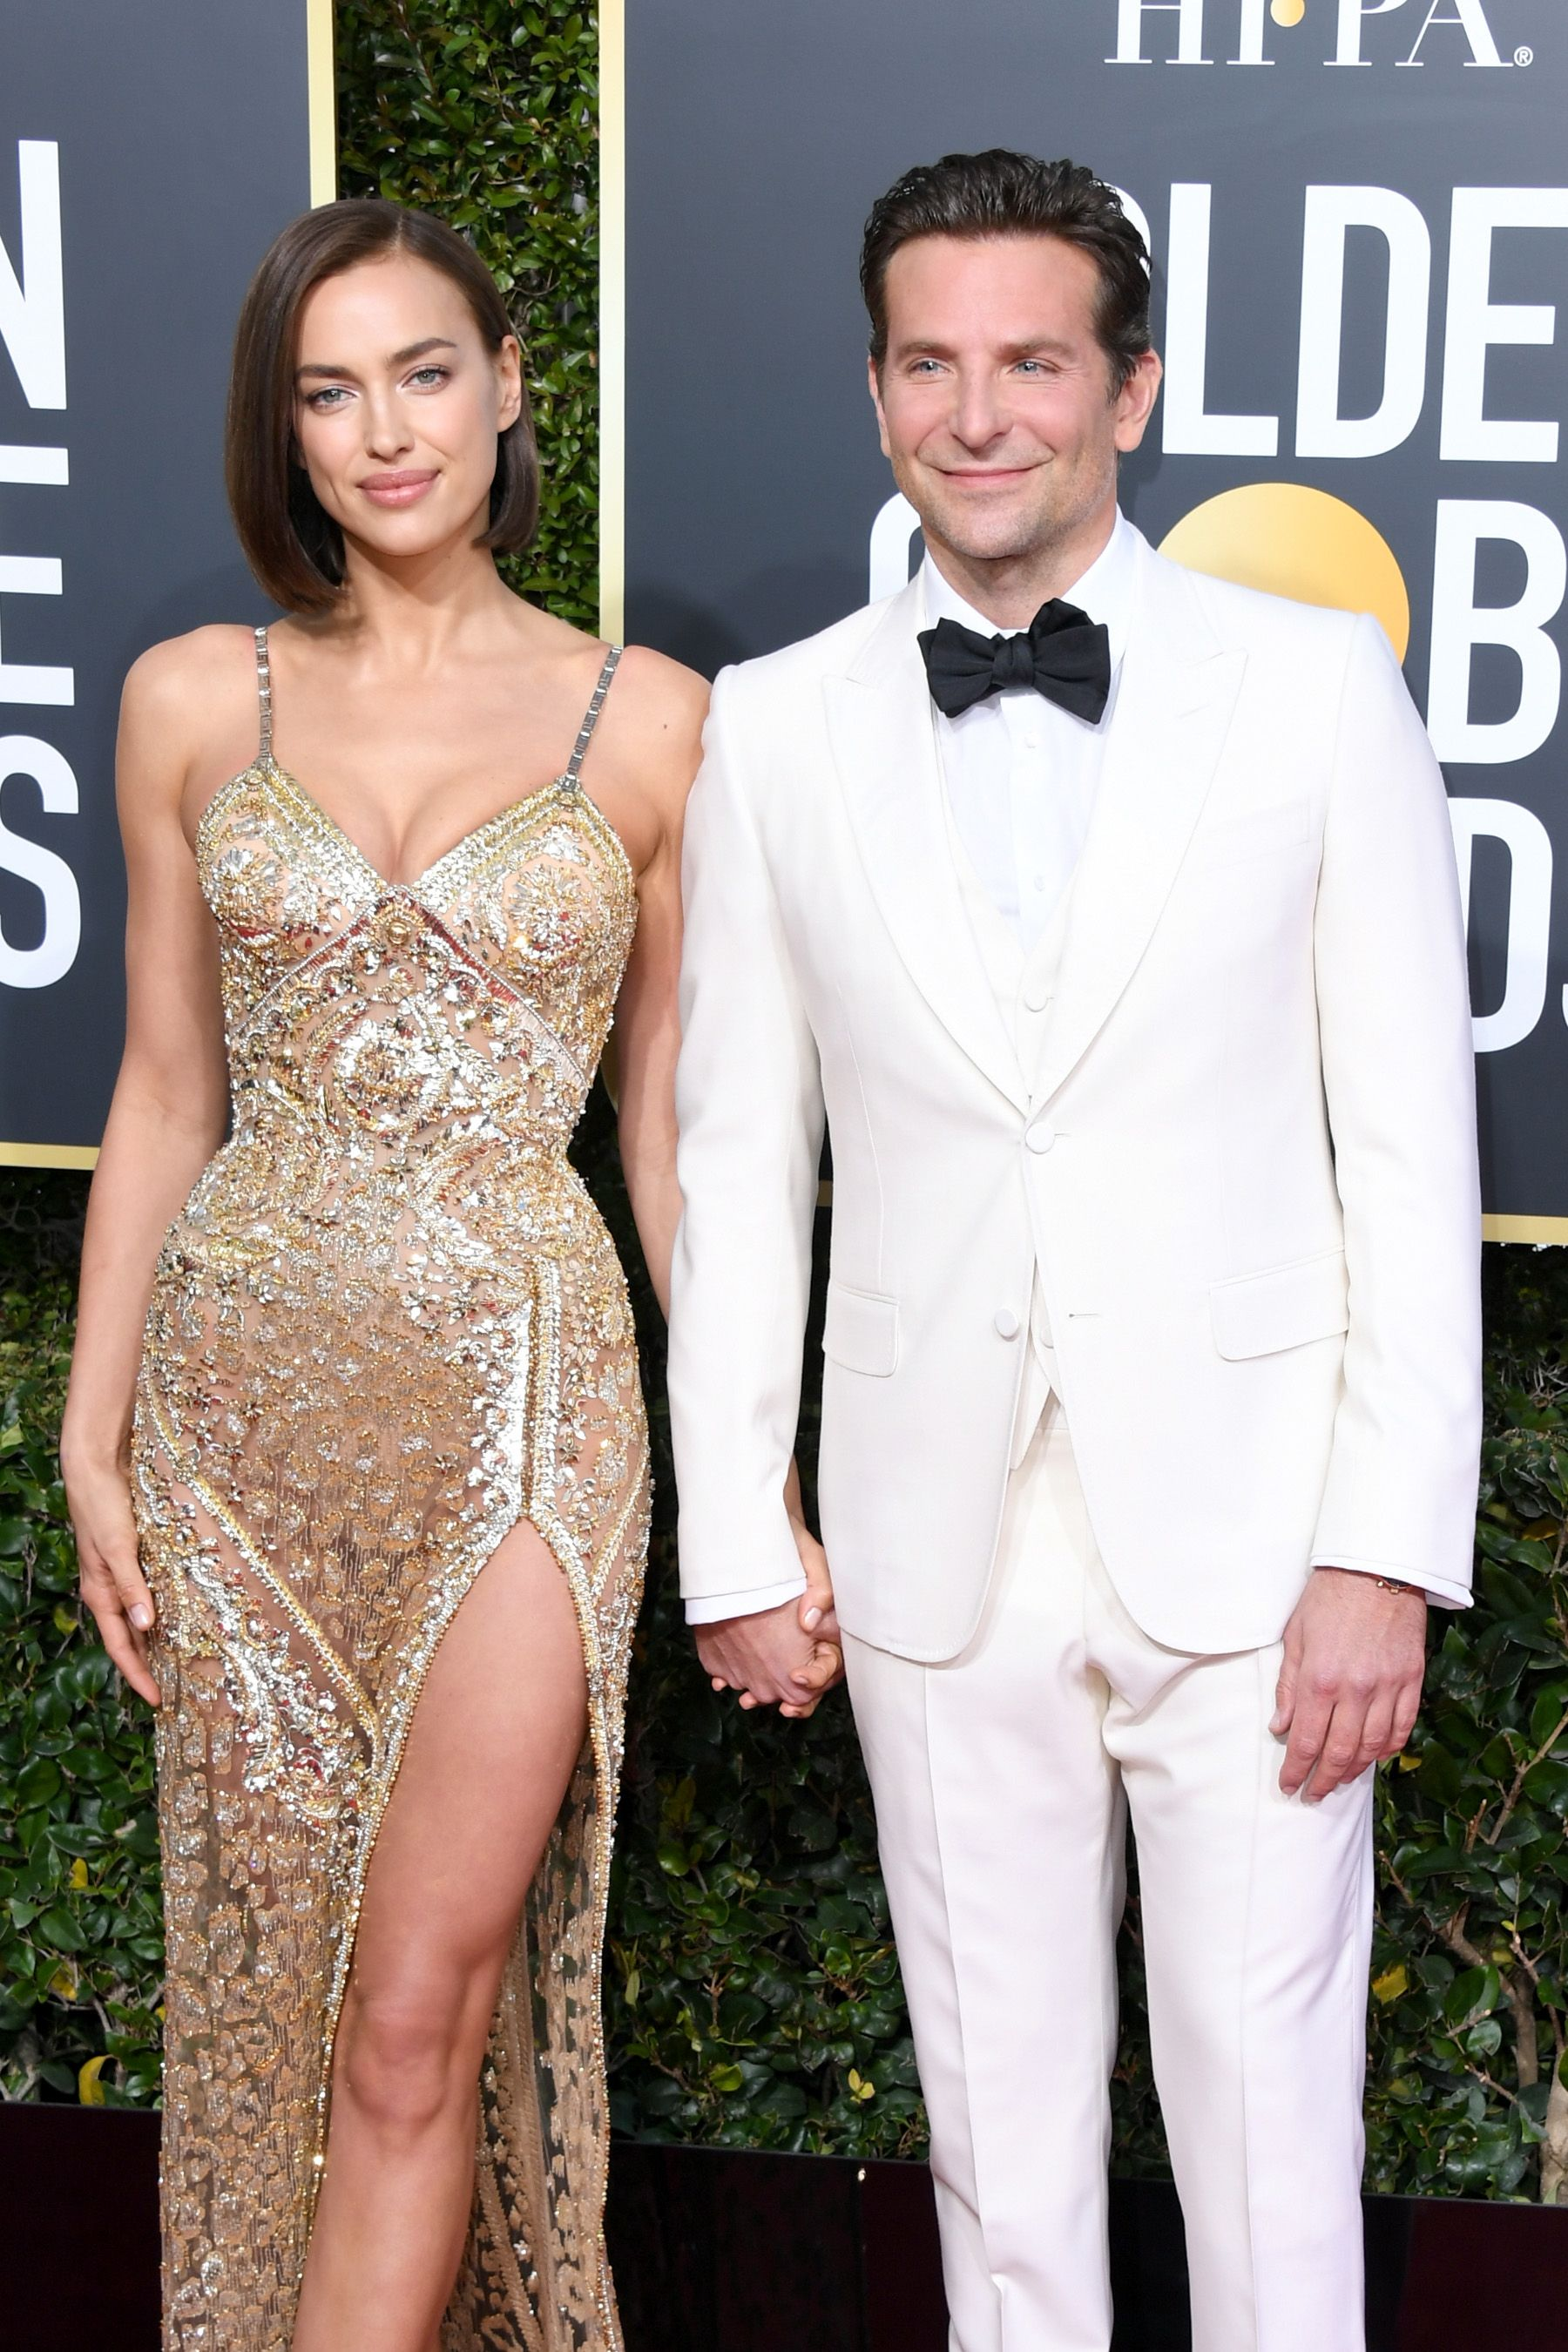 Irina Shayk and Bradley Cooper attend the 76th Annual Golden Globe Awards on January 6, 2019, in Beverly Hills, California.   Source: Getty Images